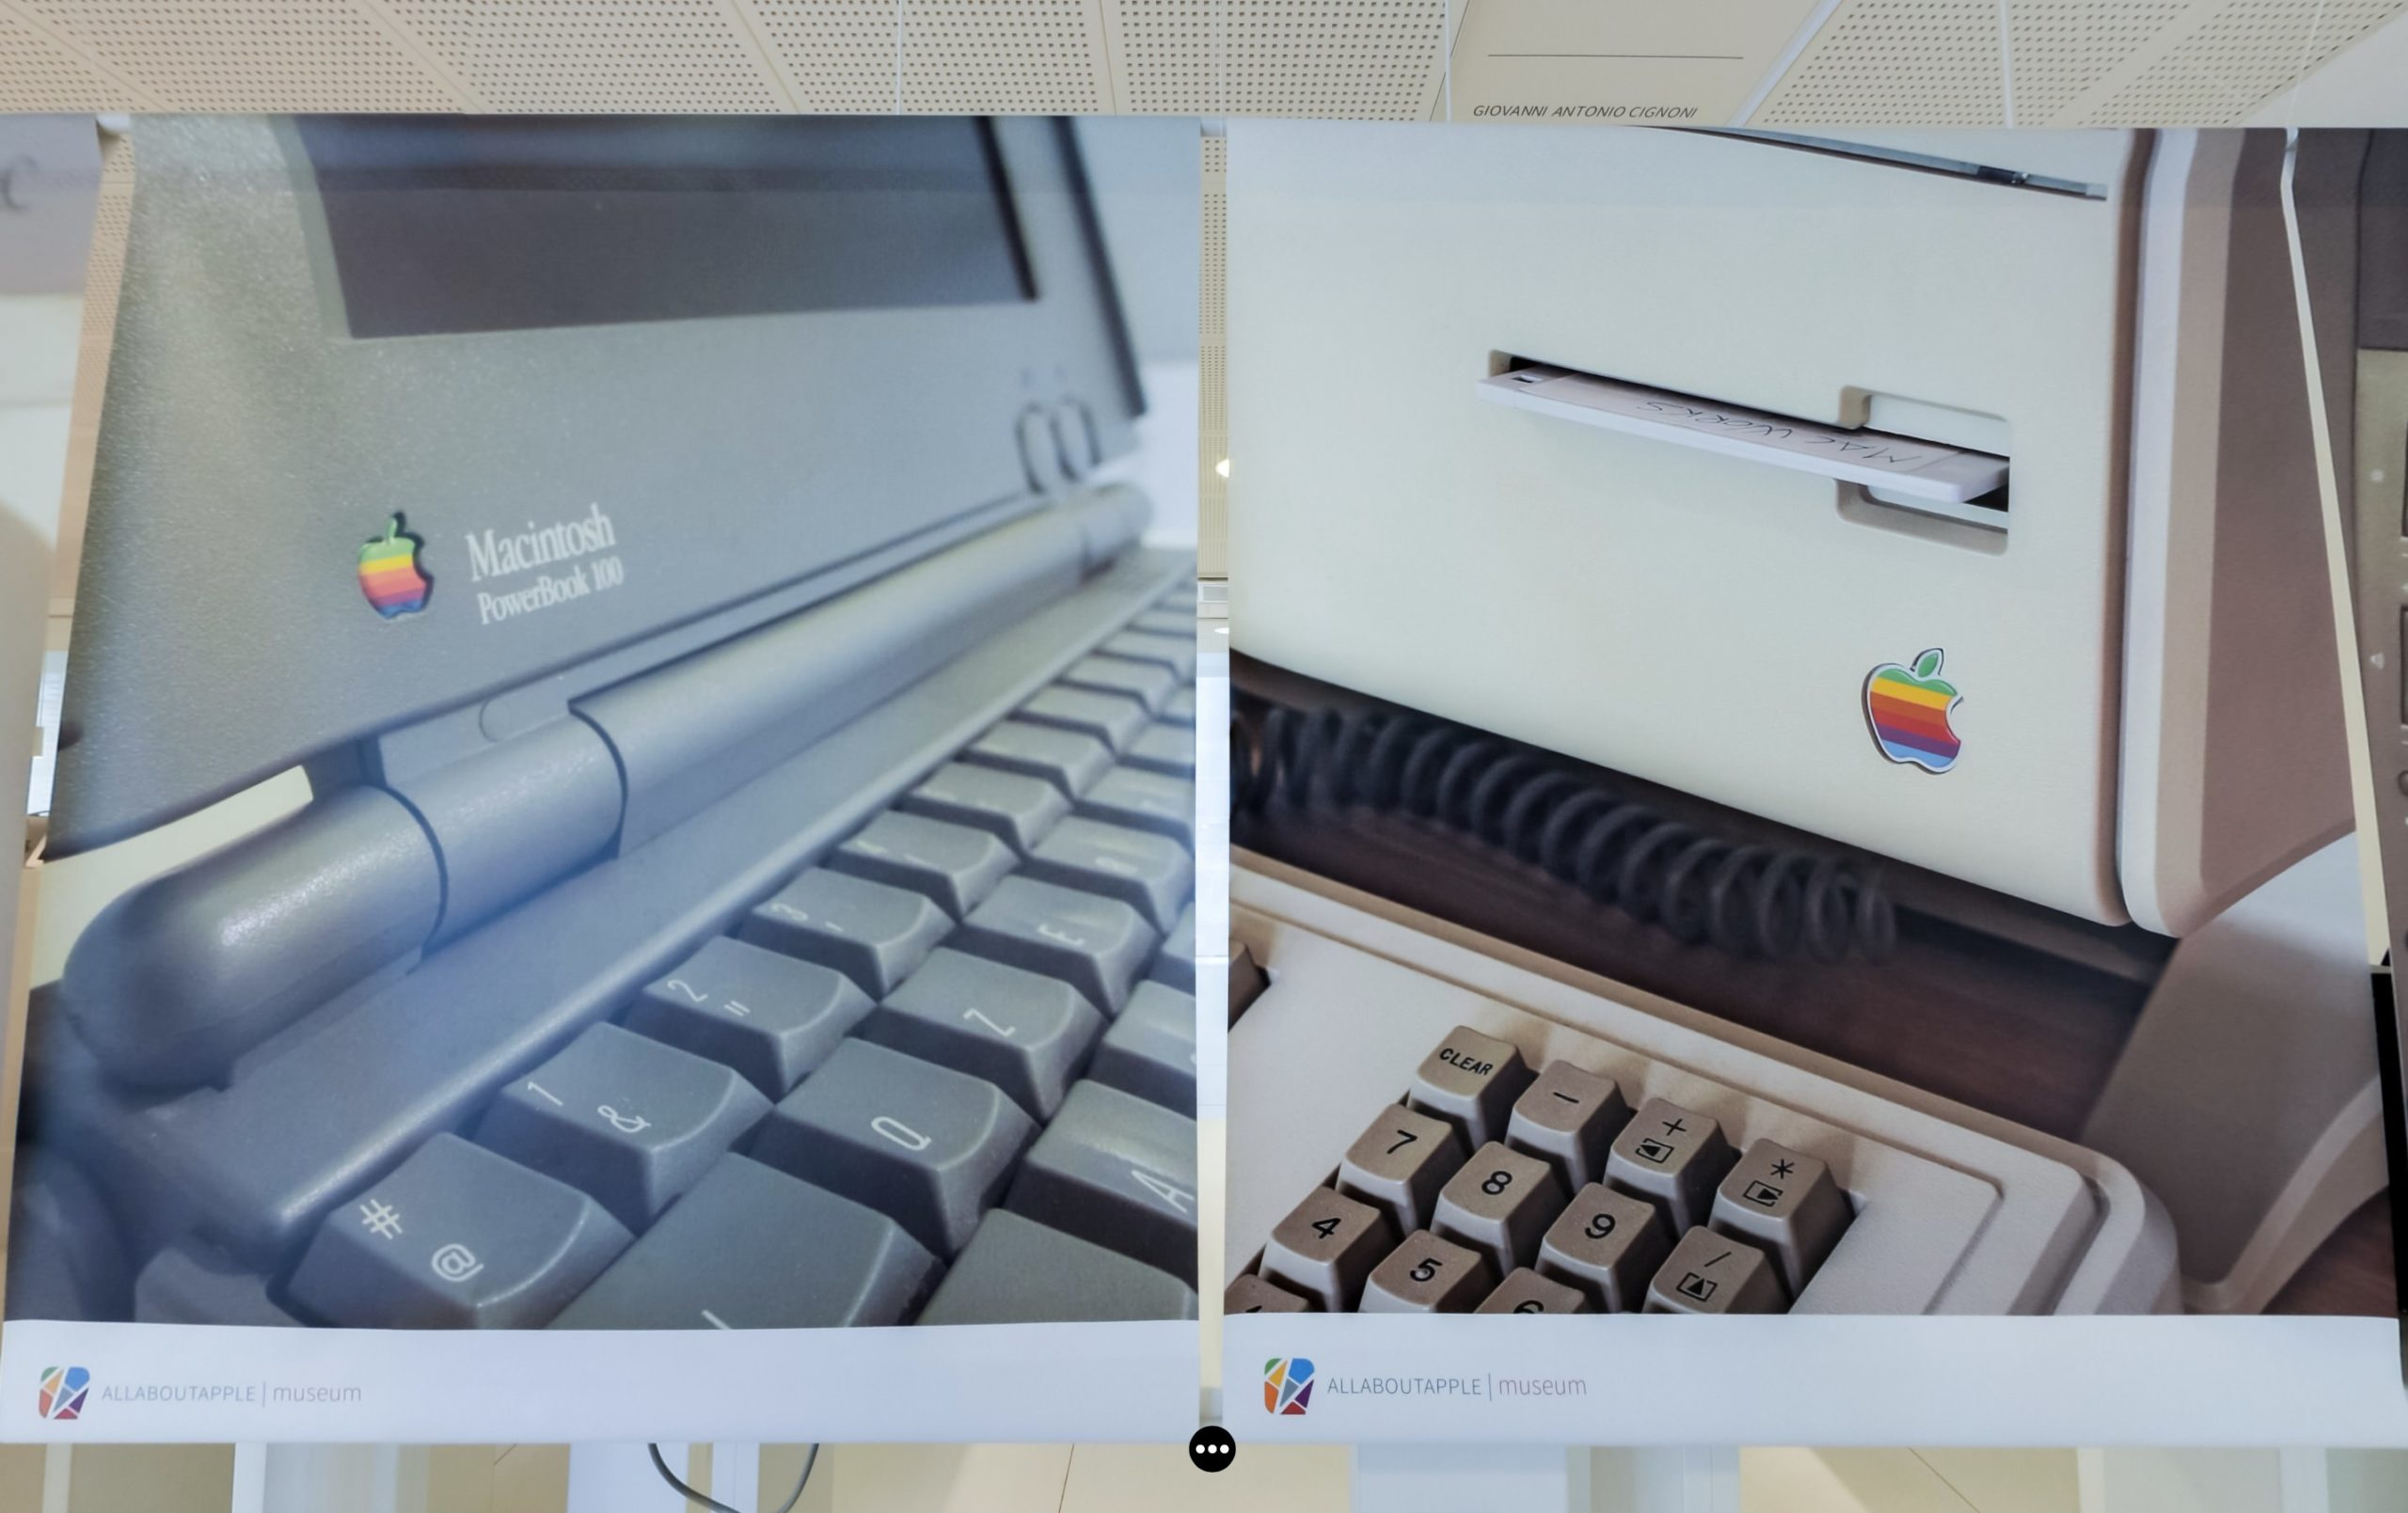 all about apple musuem